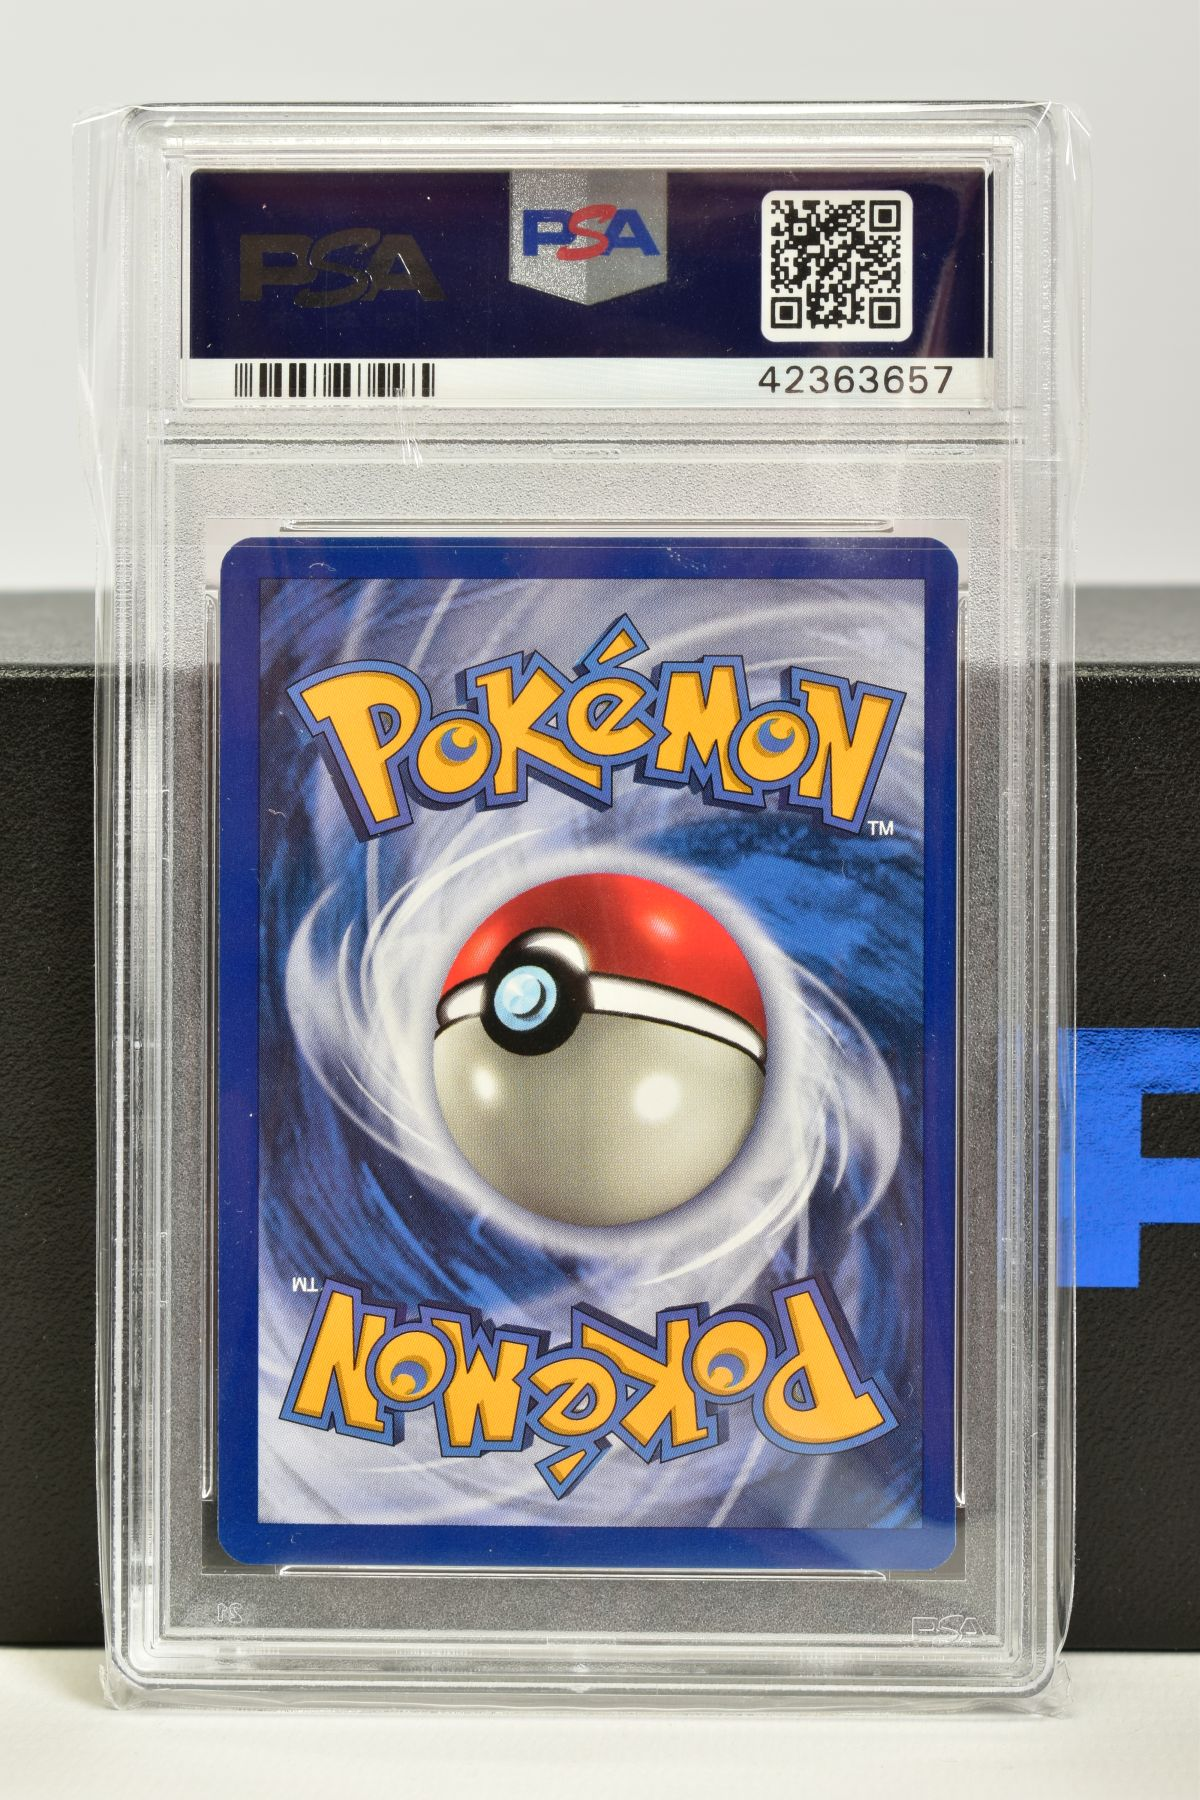 A PSA GRADED POKEMON 1ST EDITION FOSSIL SET ARTICUNO HOLO CARD, (2/62), graded GEM MINT 10 and - Image 2 of 2